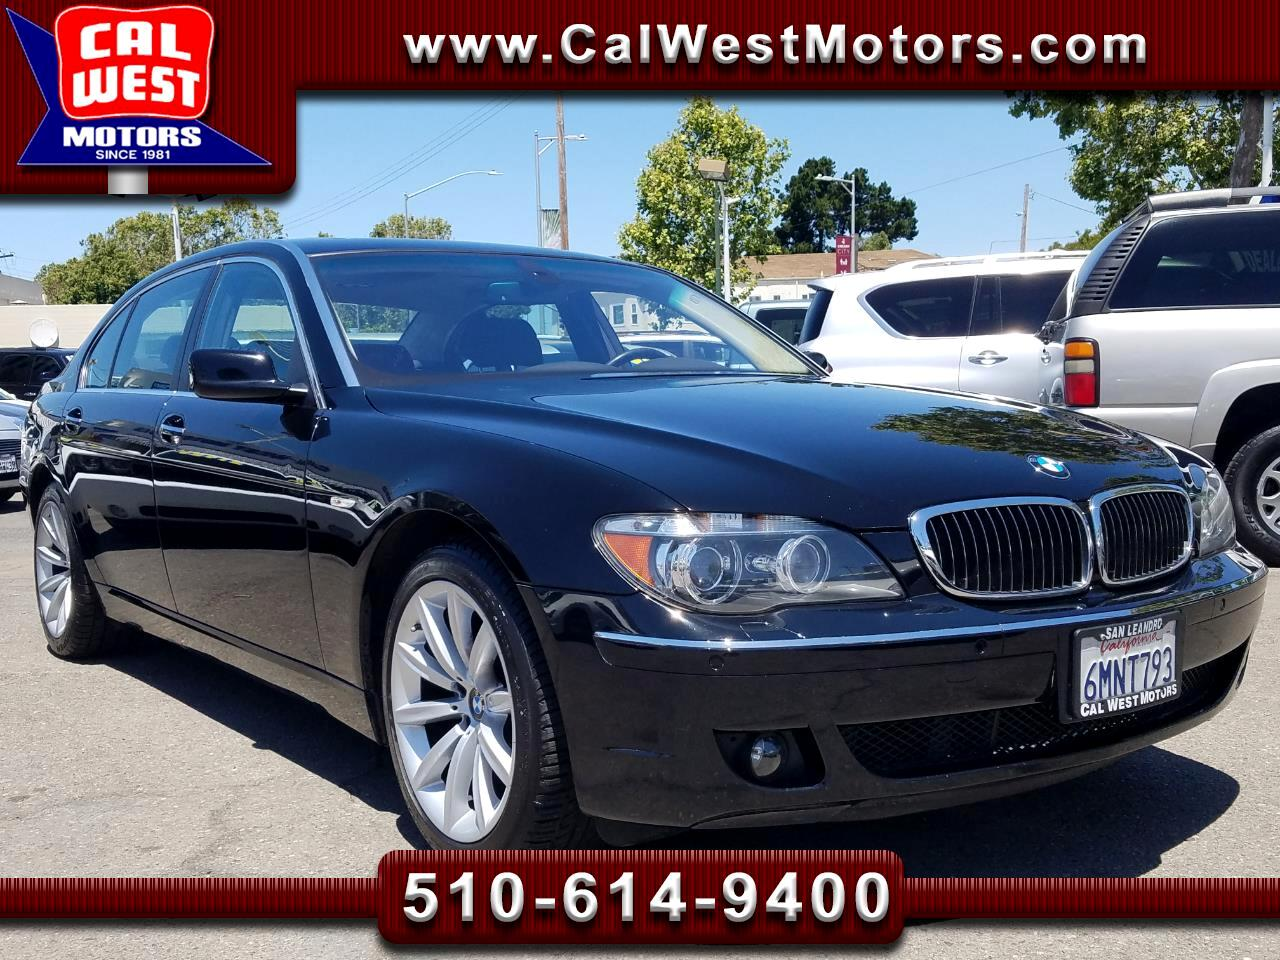 2008 BMW 7-Series 750LI Luxury Sedan NAV LoMiles SuperNice ExMtnce